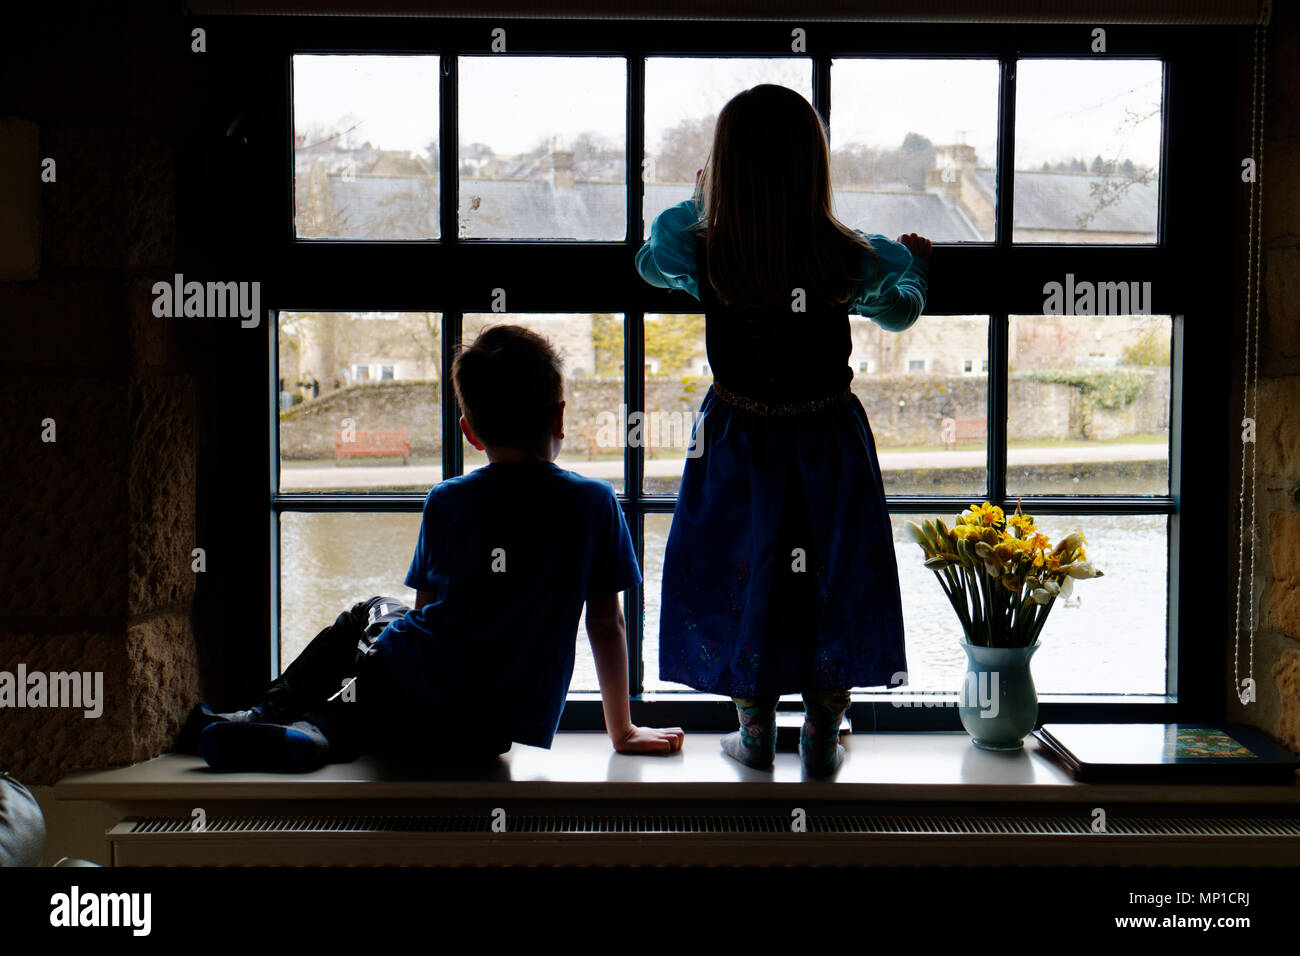 Brother (5 yrs old) and sister (3 yrs old) sat on a window sill, silhouetted against a sash window with the River Wye in Bakewell outside - Stock Image